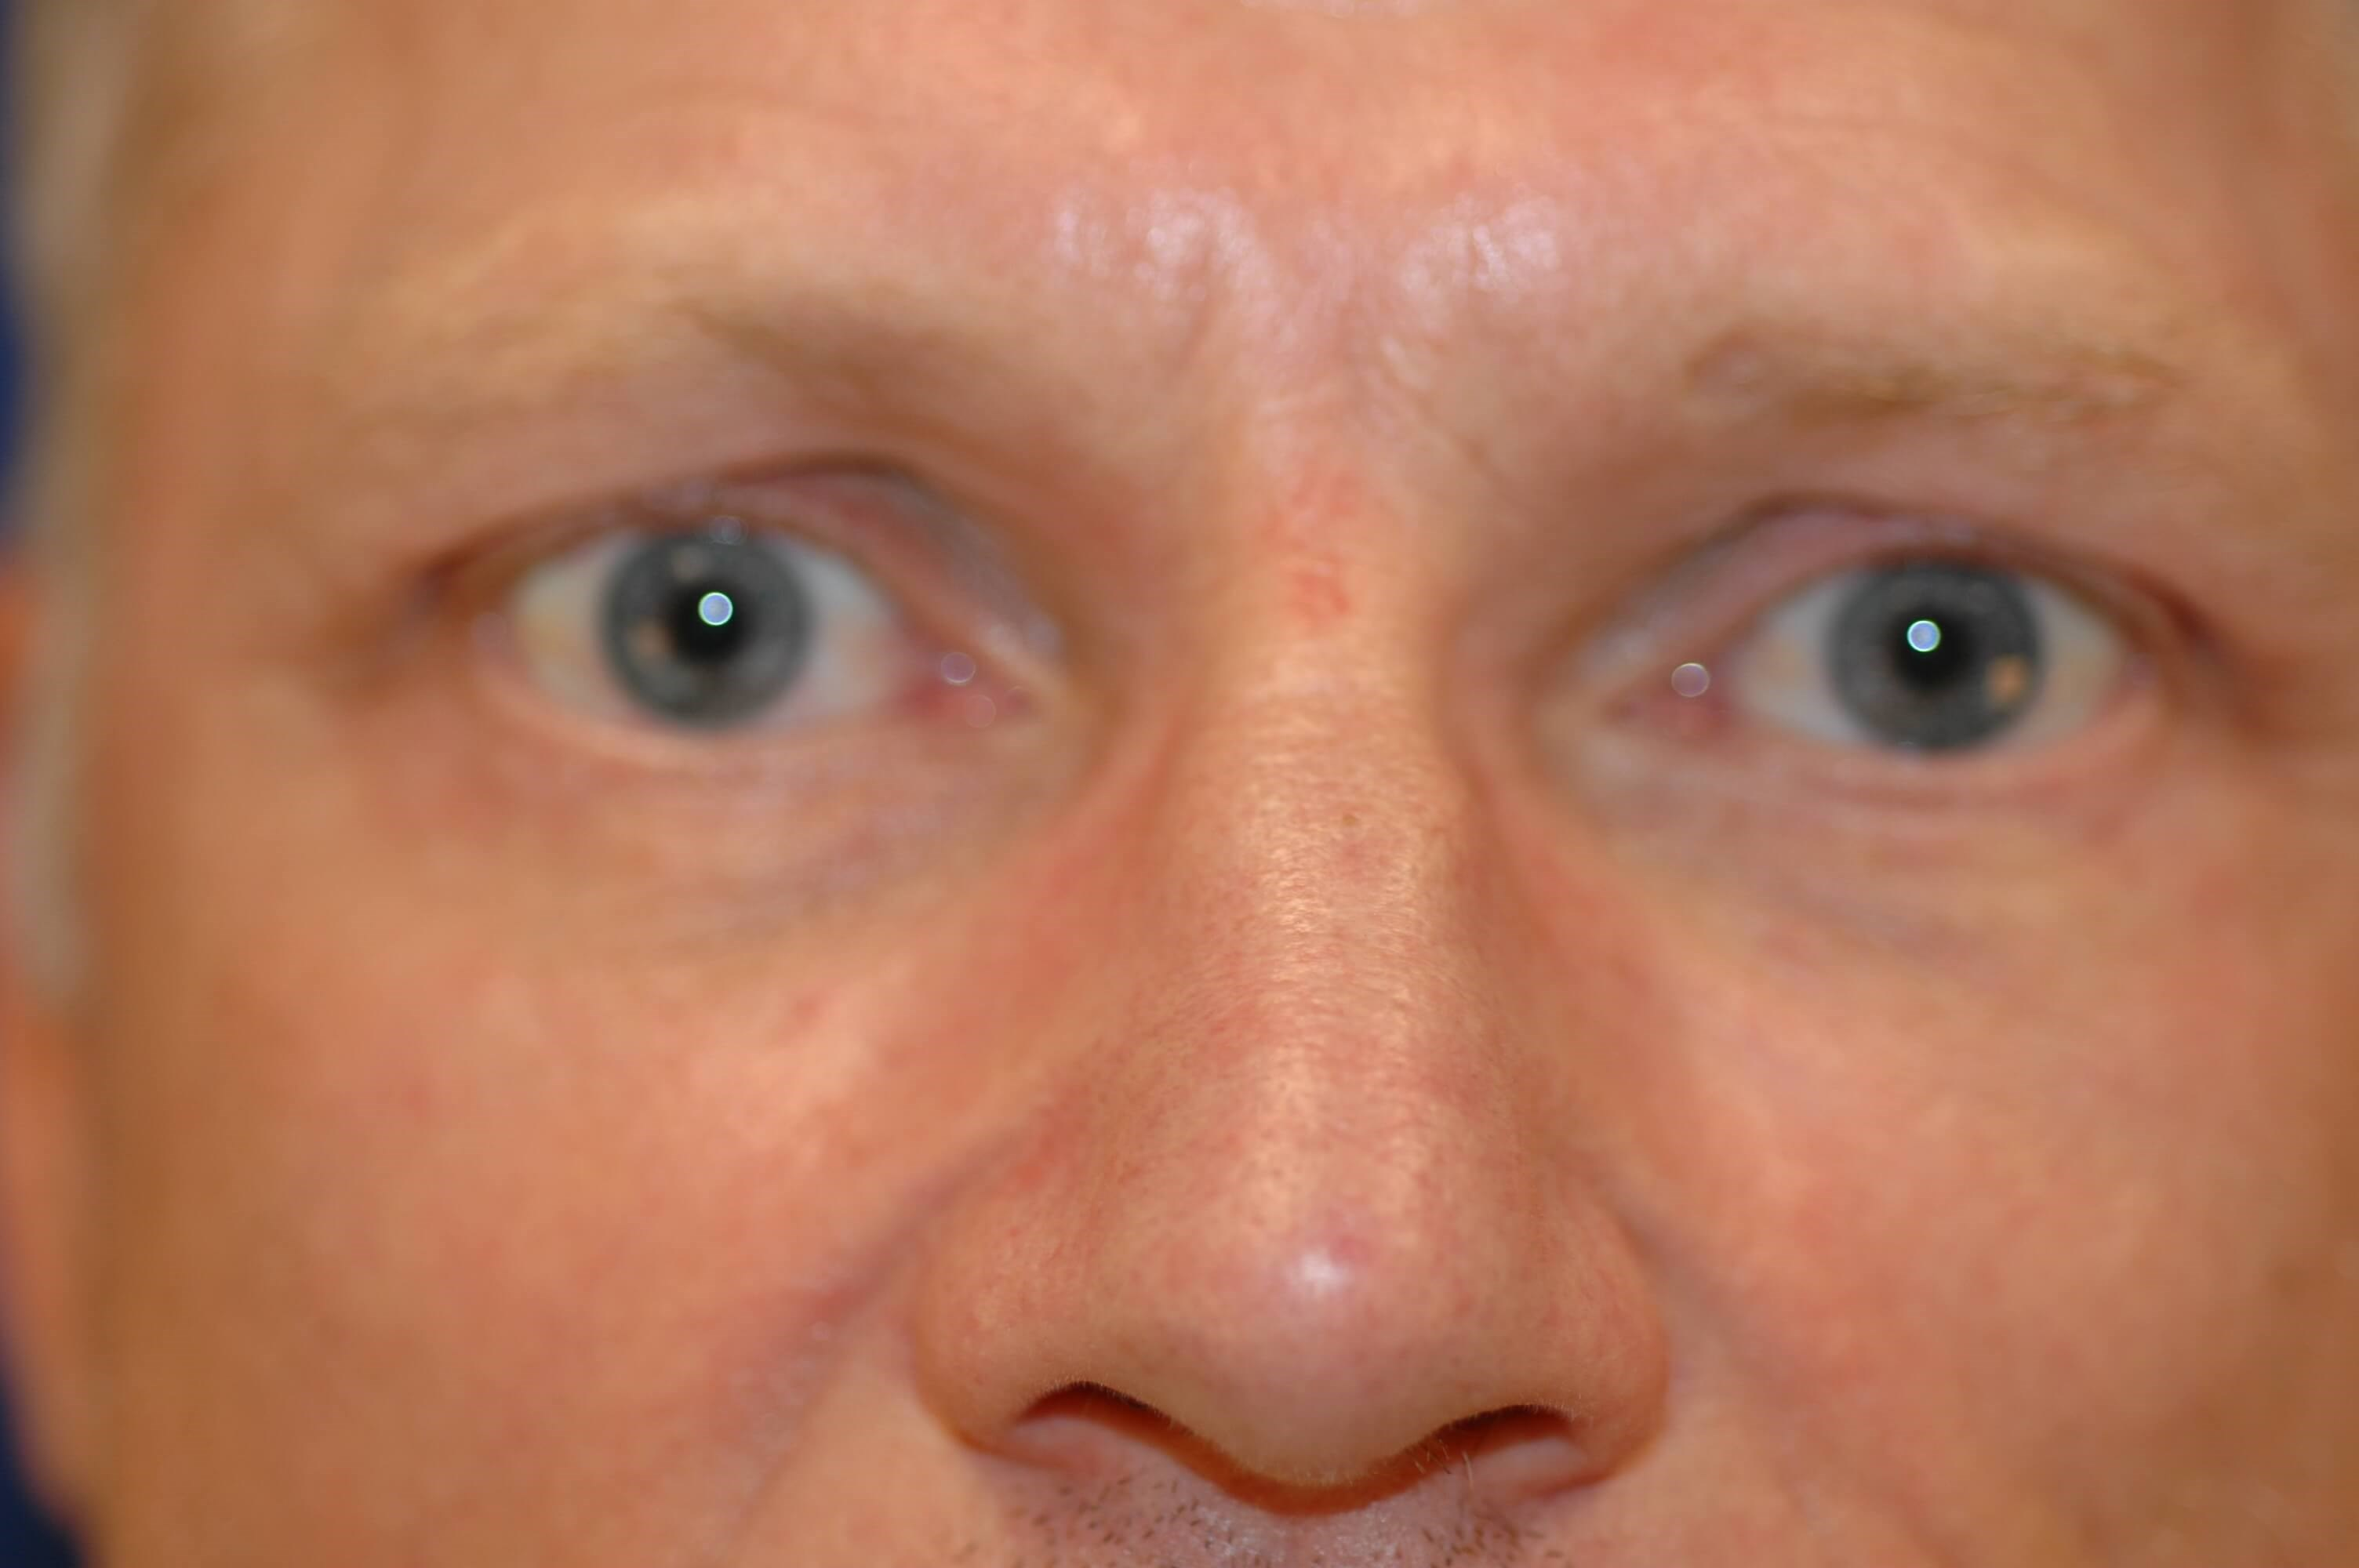 Newport Beach Blepharoplasty After